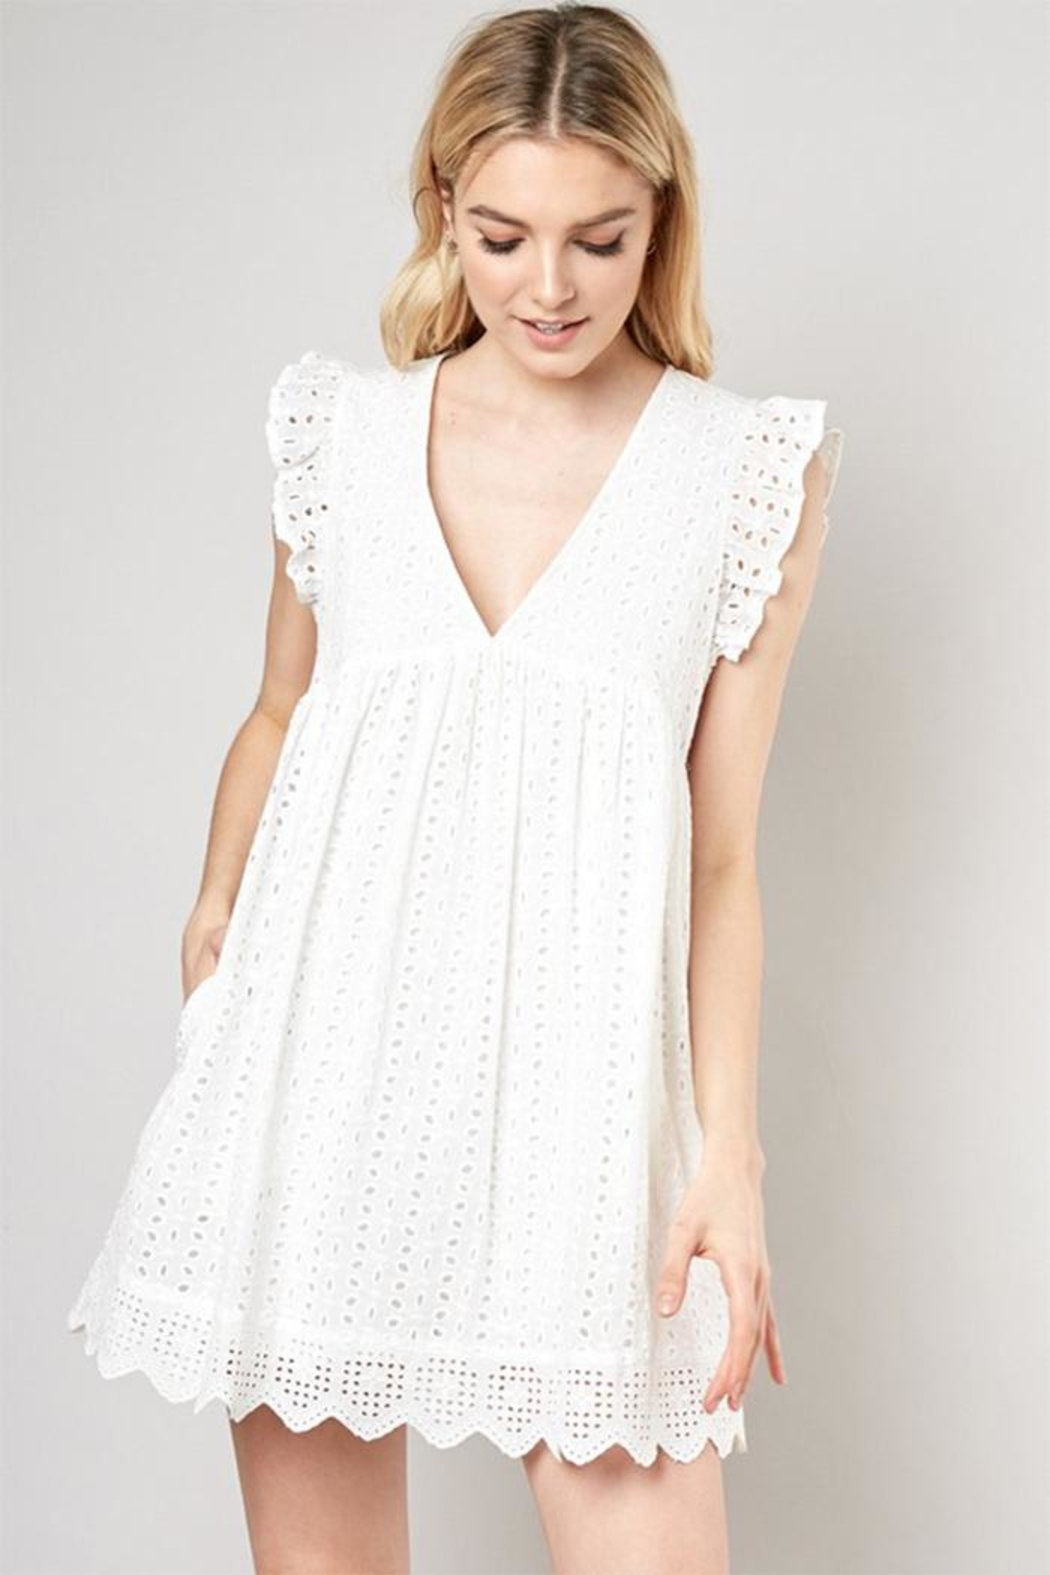 Mustard Seed Embroidered Lace Romper - Main Image